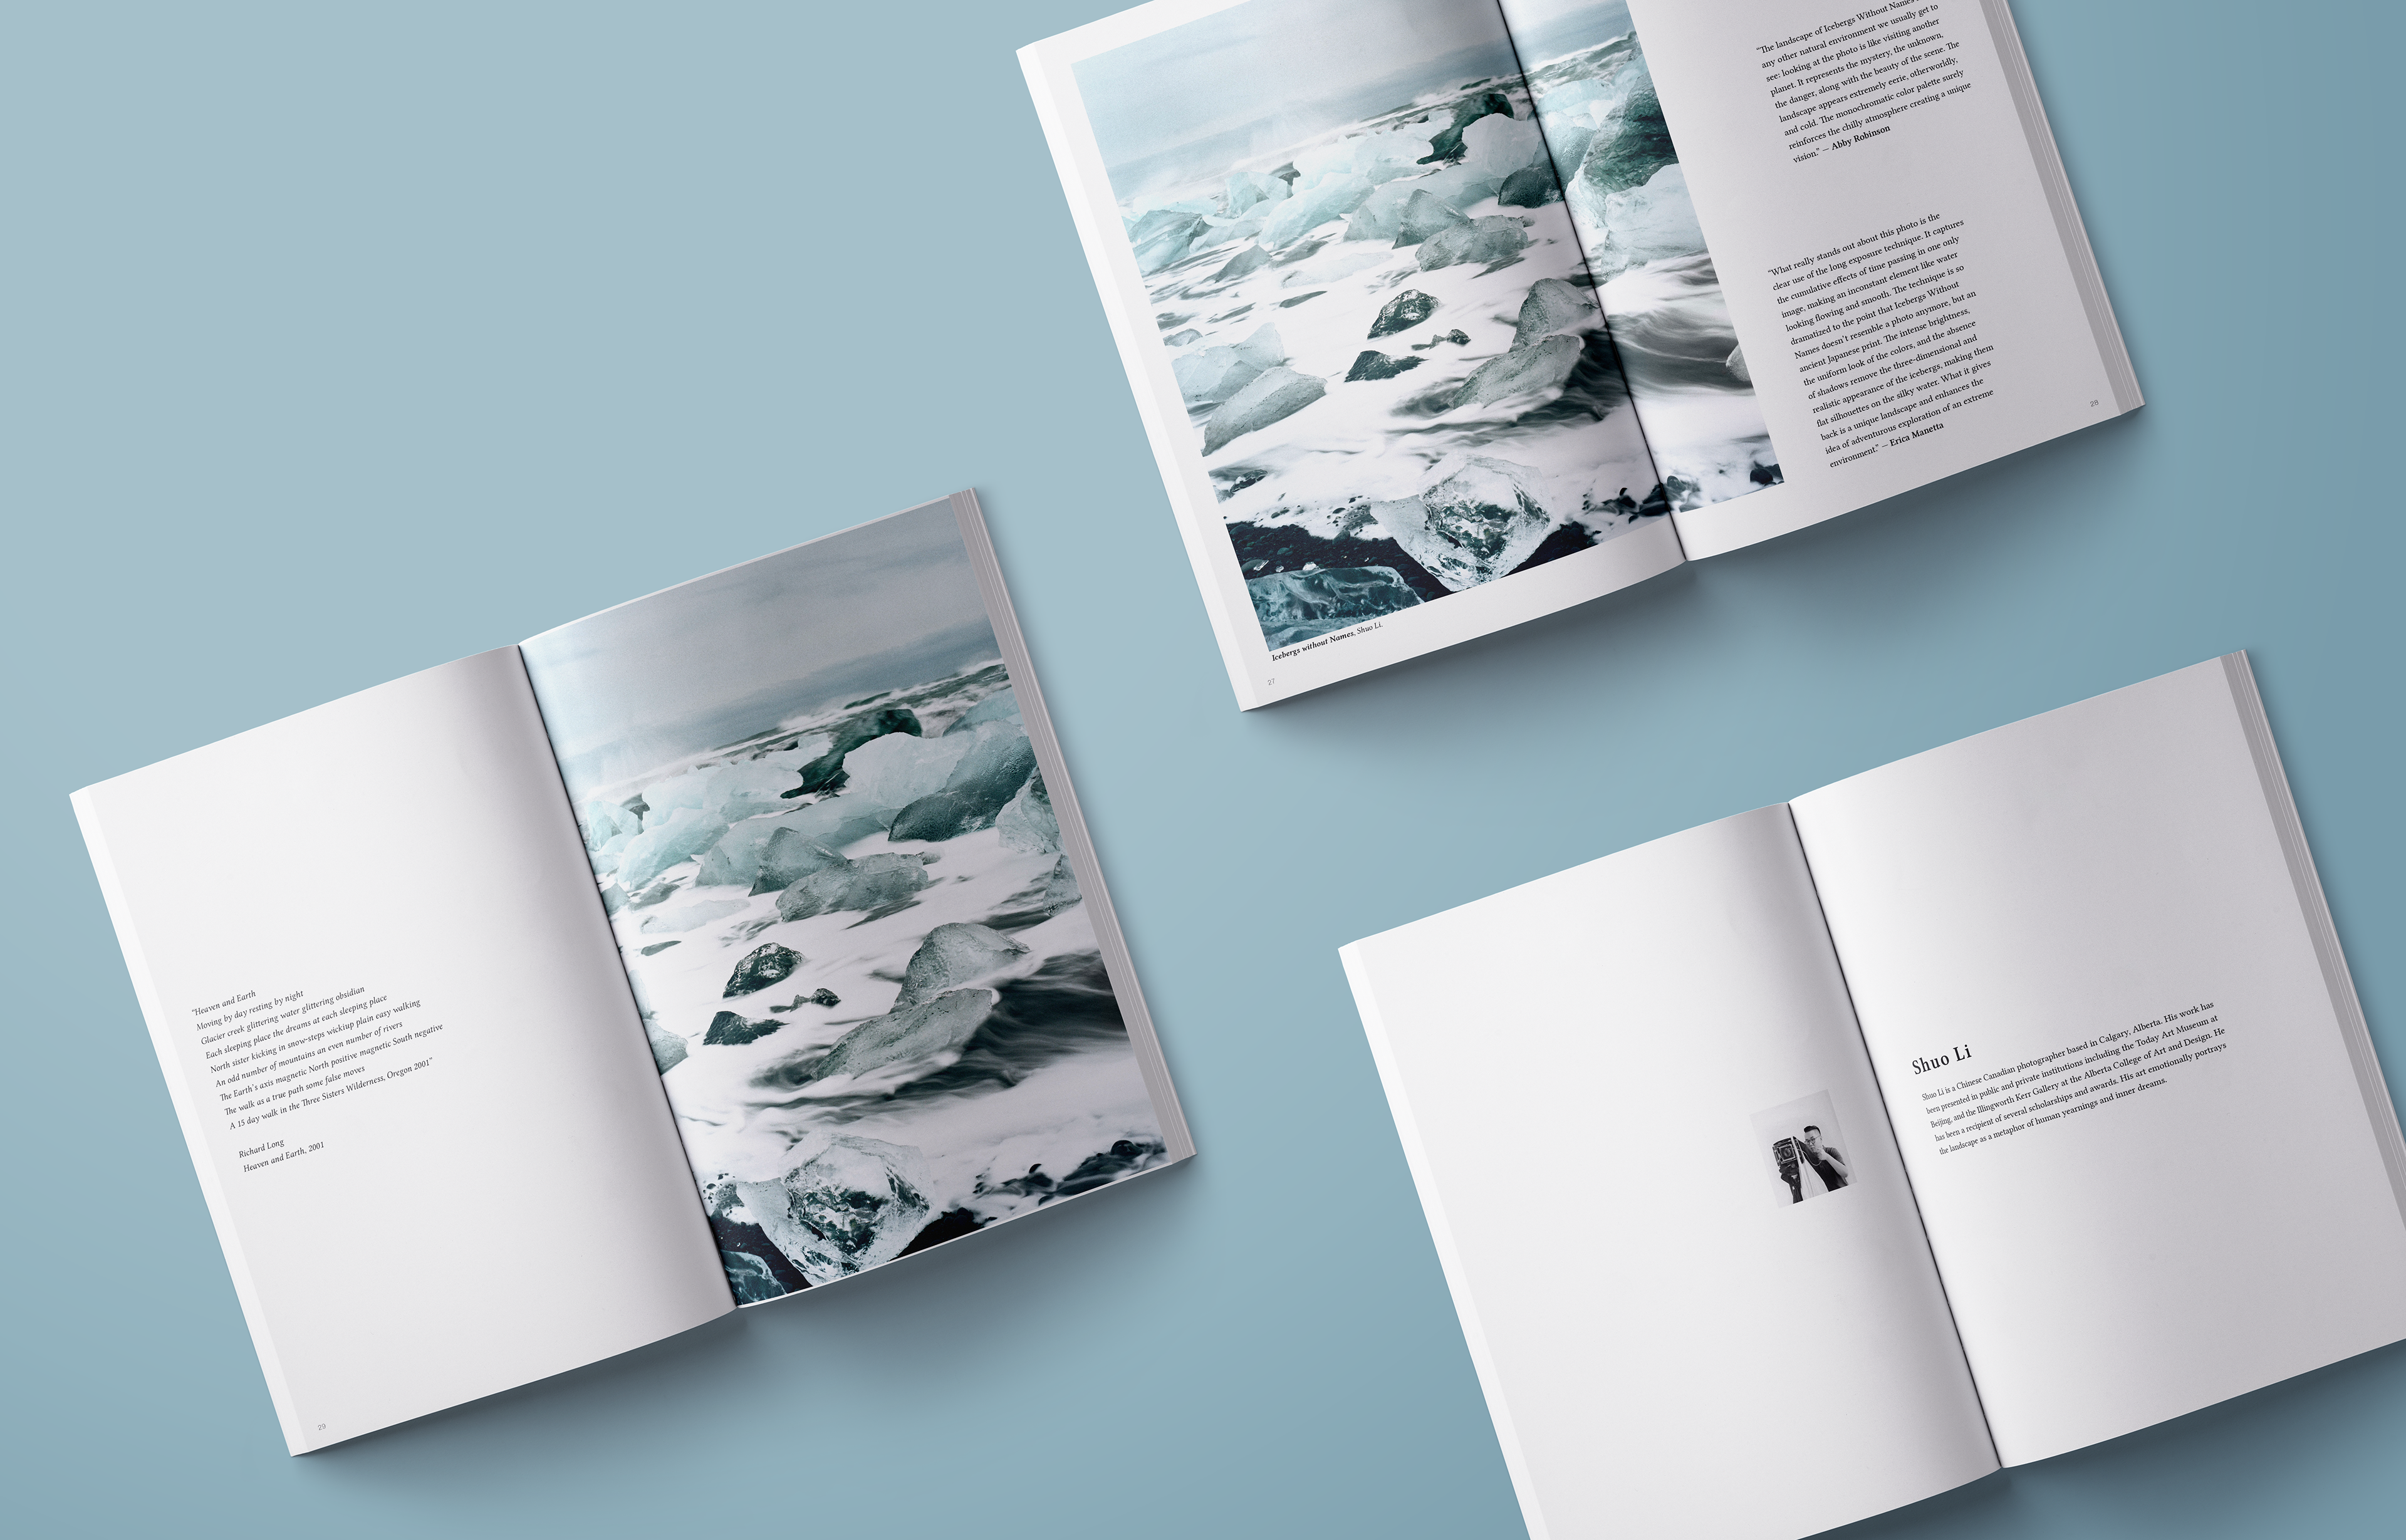 Across the Ocean on Behance